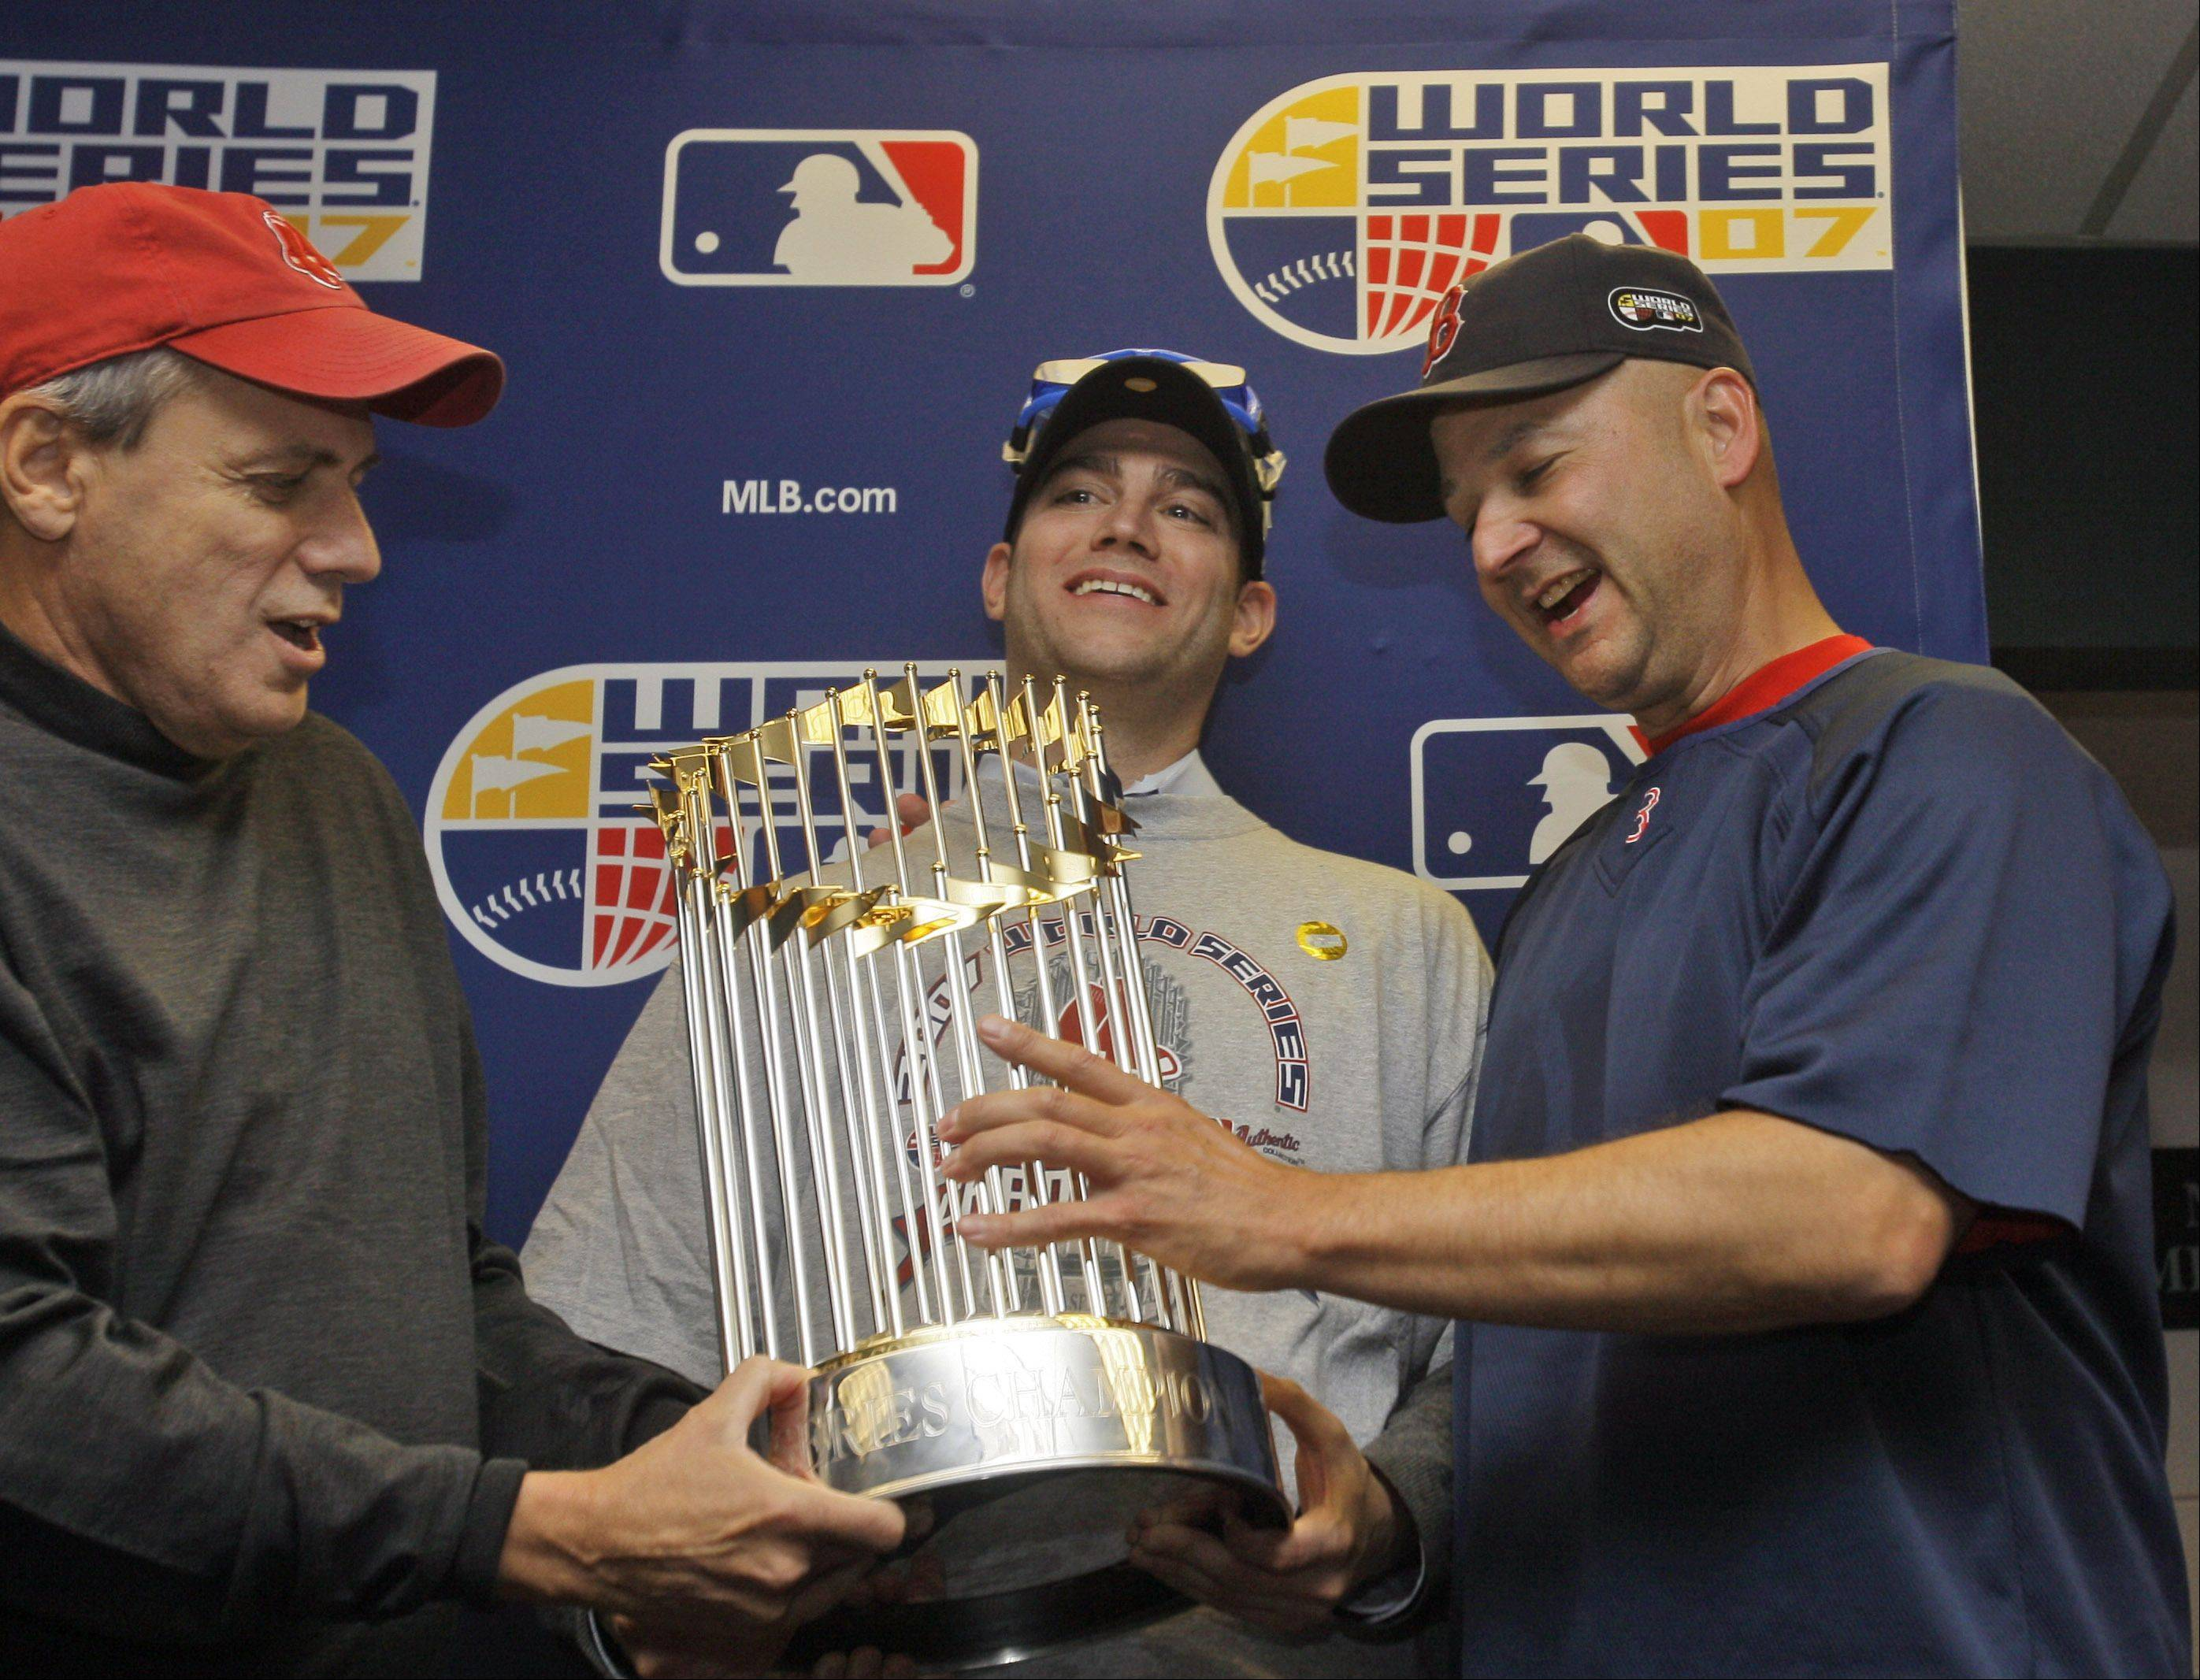 Triumphant trio dismantled. Boston Red Sox president Larry Lucchino, left, general manager Theo Epstein, and manager Terry Francona were all smiles as they held the World Series trophy after Boston beat the Colorado Rockies on Oct. 28, 2007 in Denver to sweep the series. Now only Lucchino remains with the franchise with